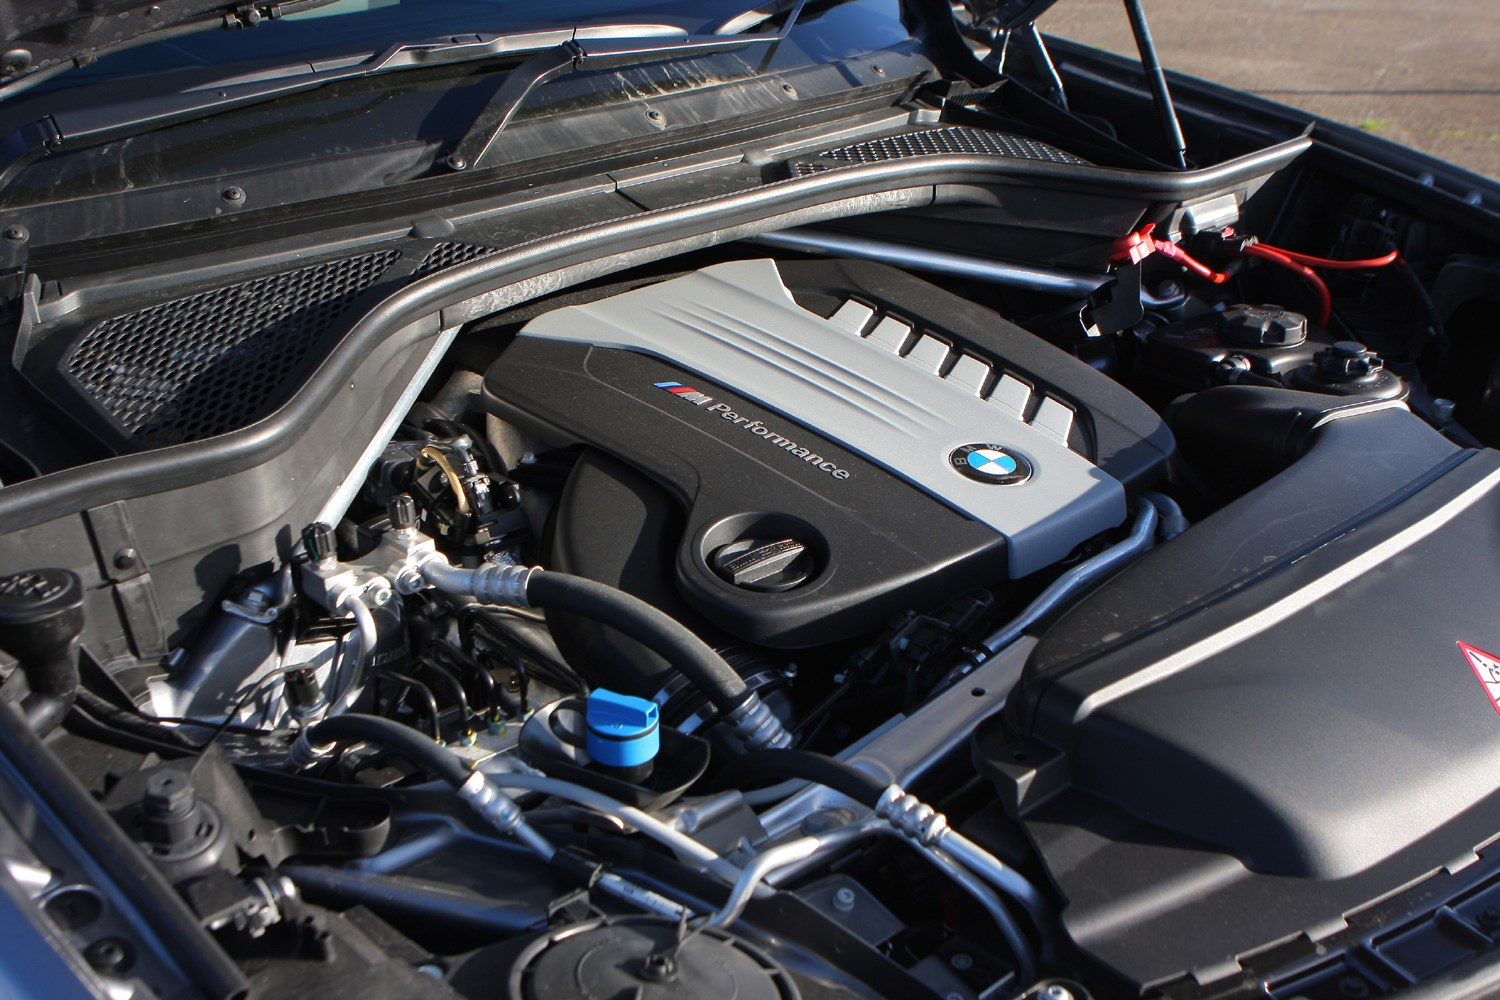 Bmw x5 for sale used bmw x5 cars parkers for Bmw x5 motor for sale